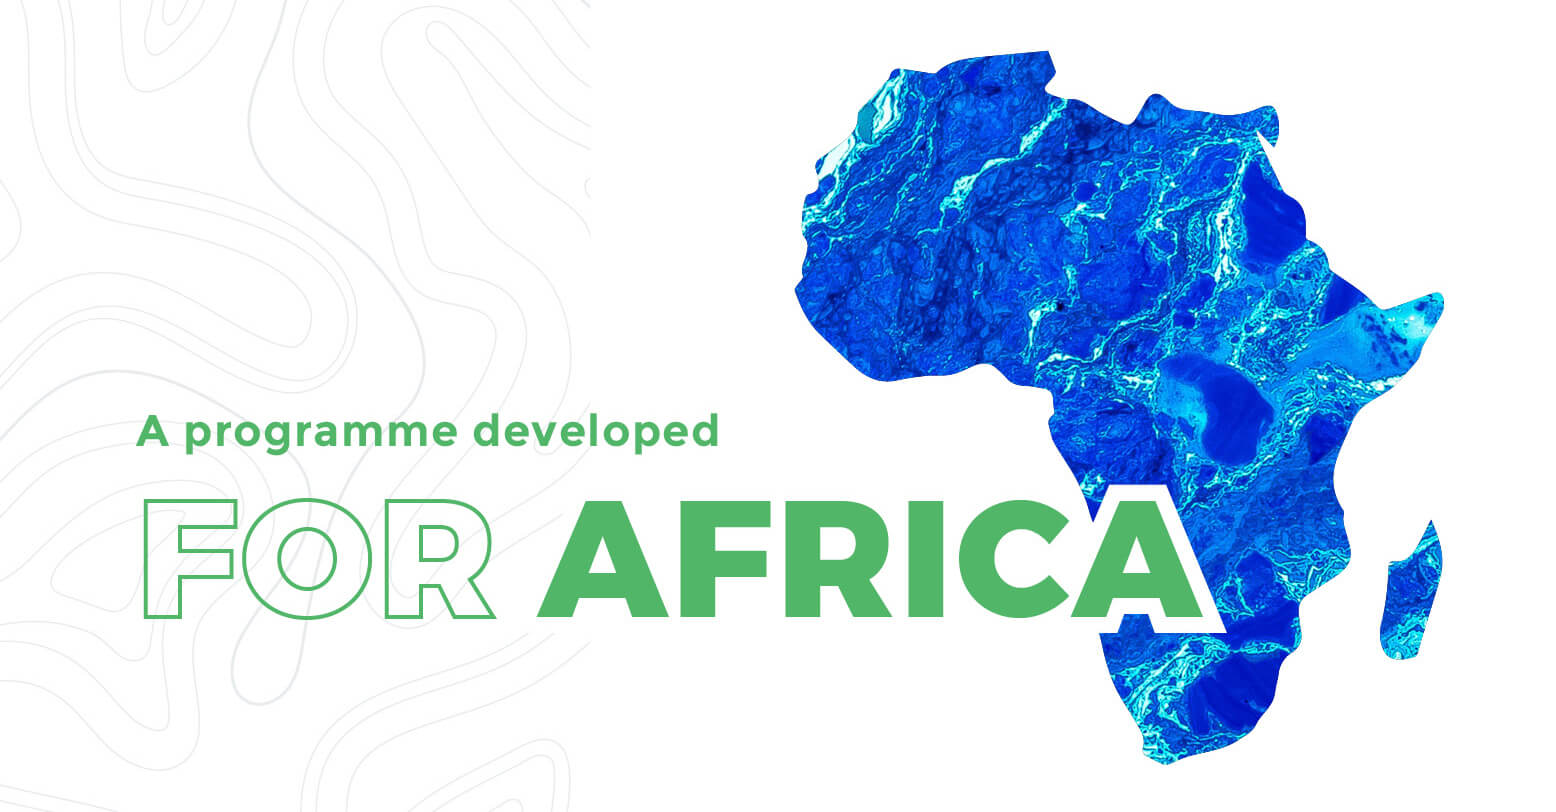 A PROGRAMME DEVELOPED FOR AFRICA